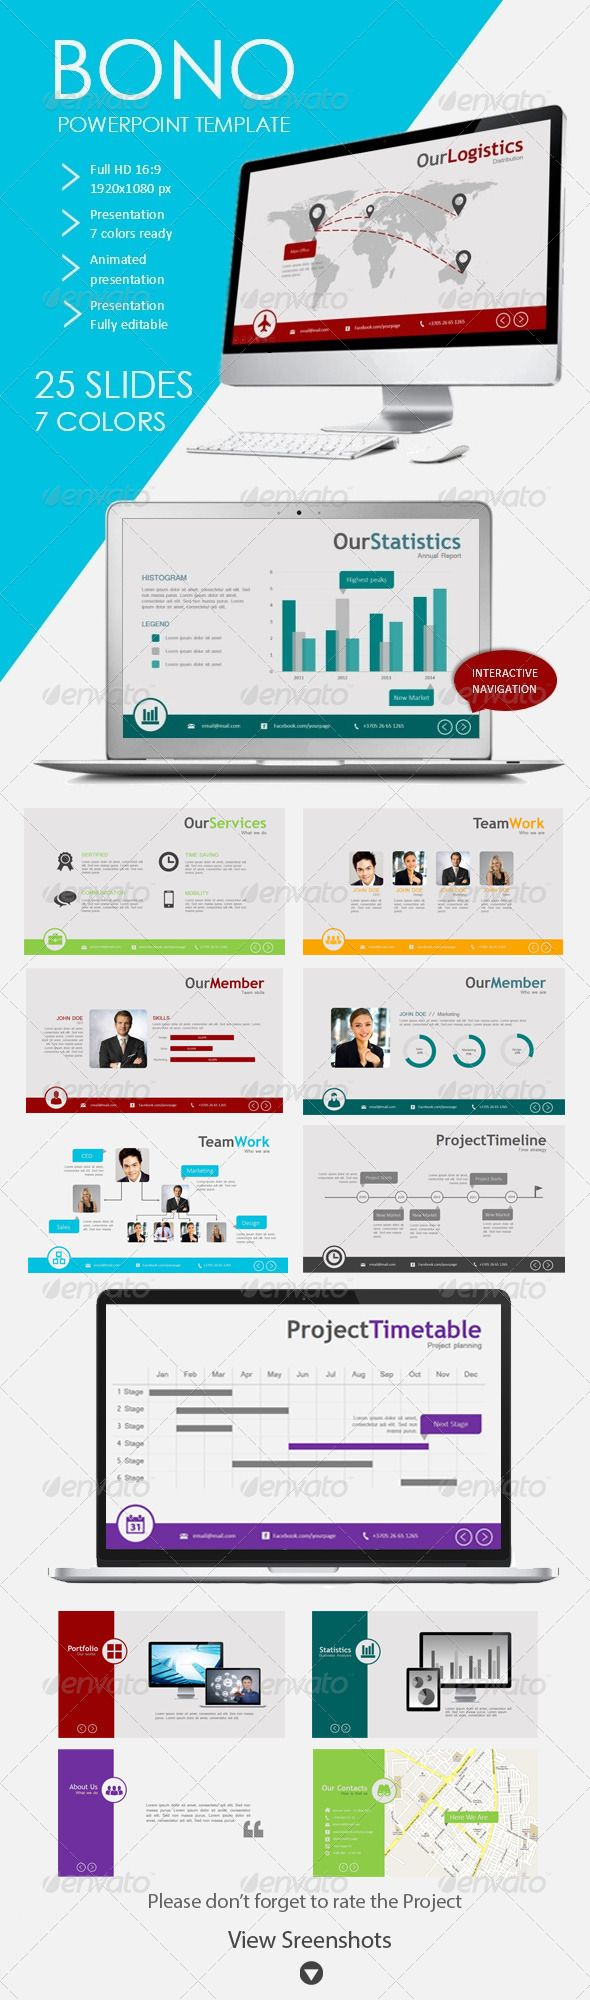 Bono Powerpoint Template for Business - Presentation Templates